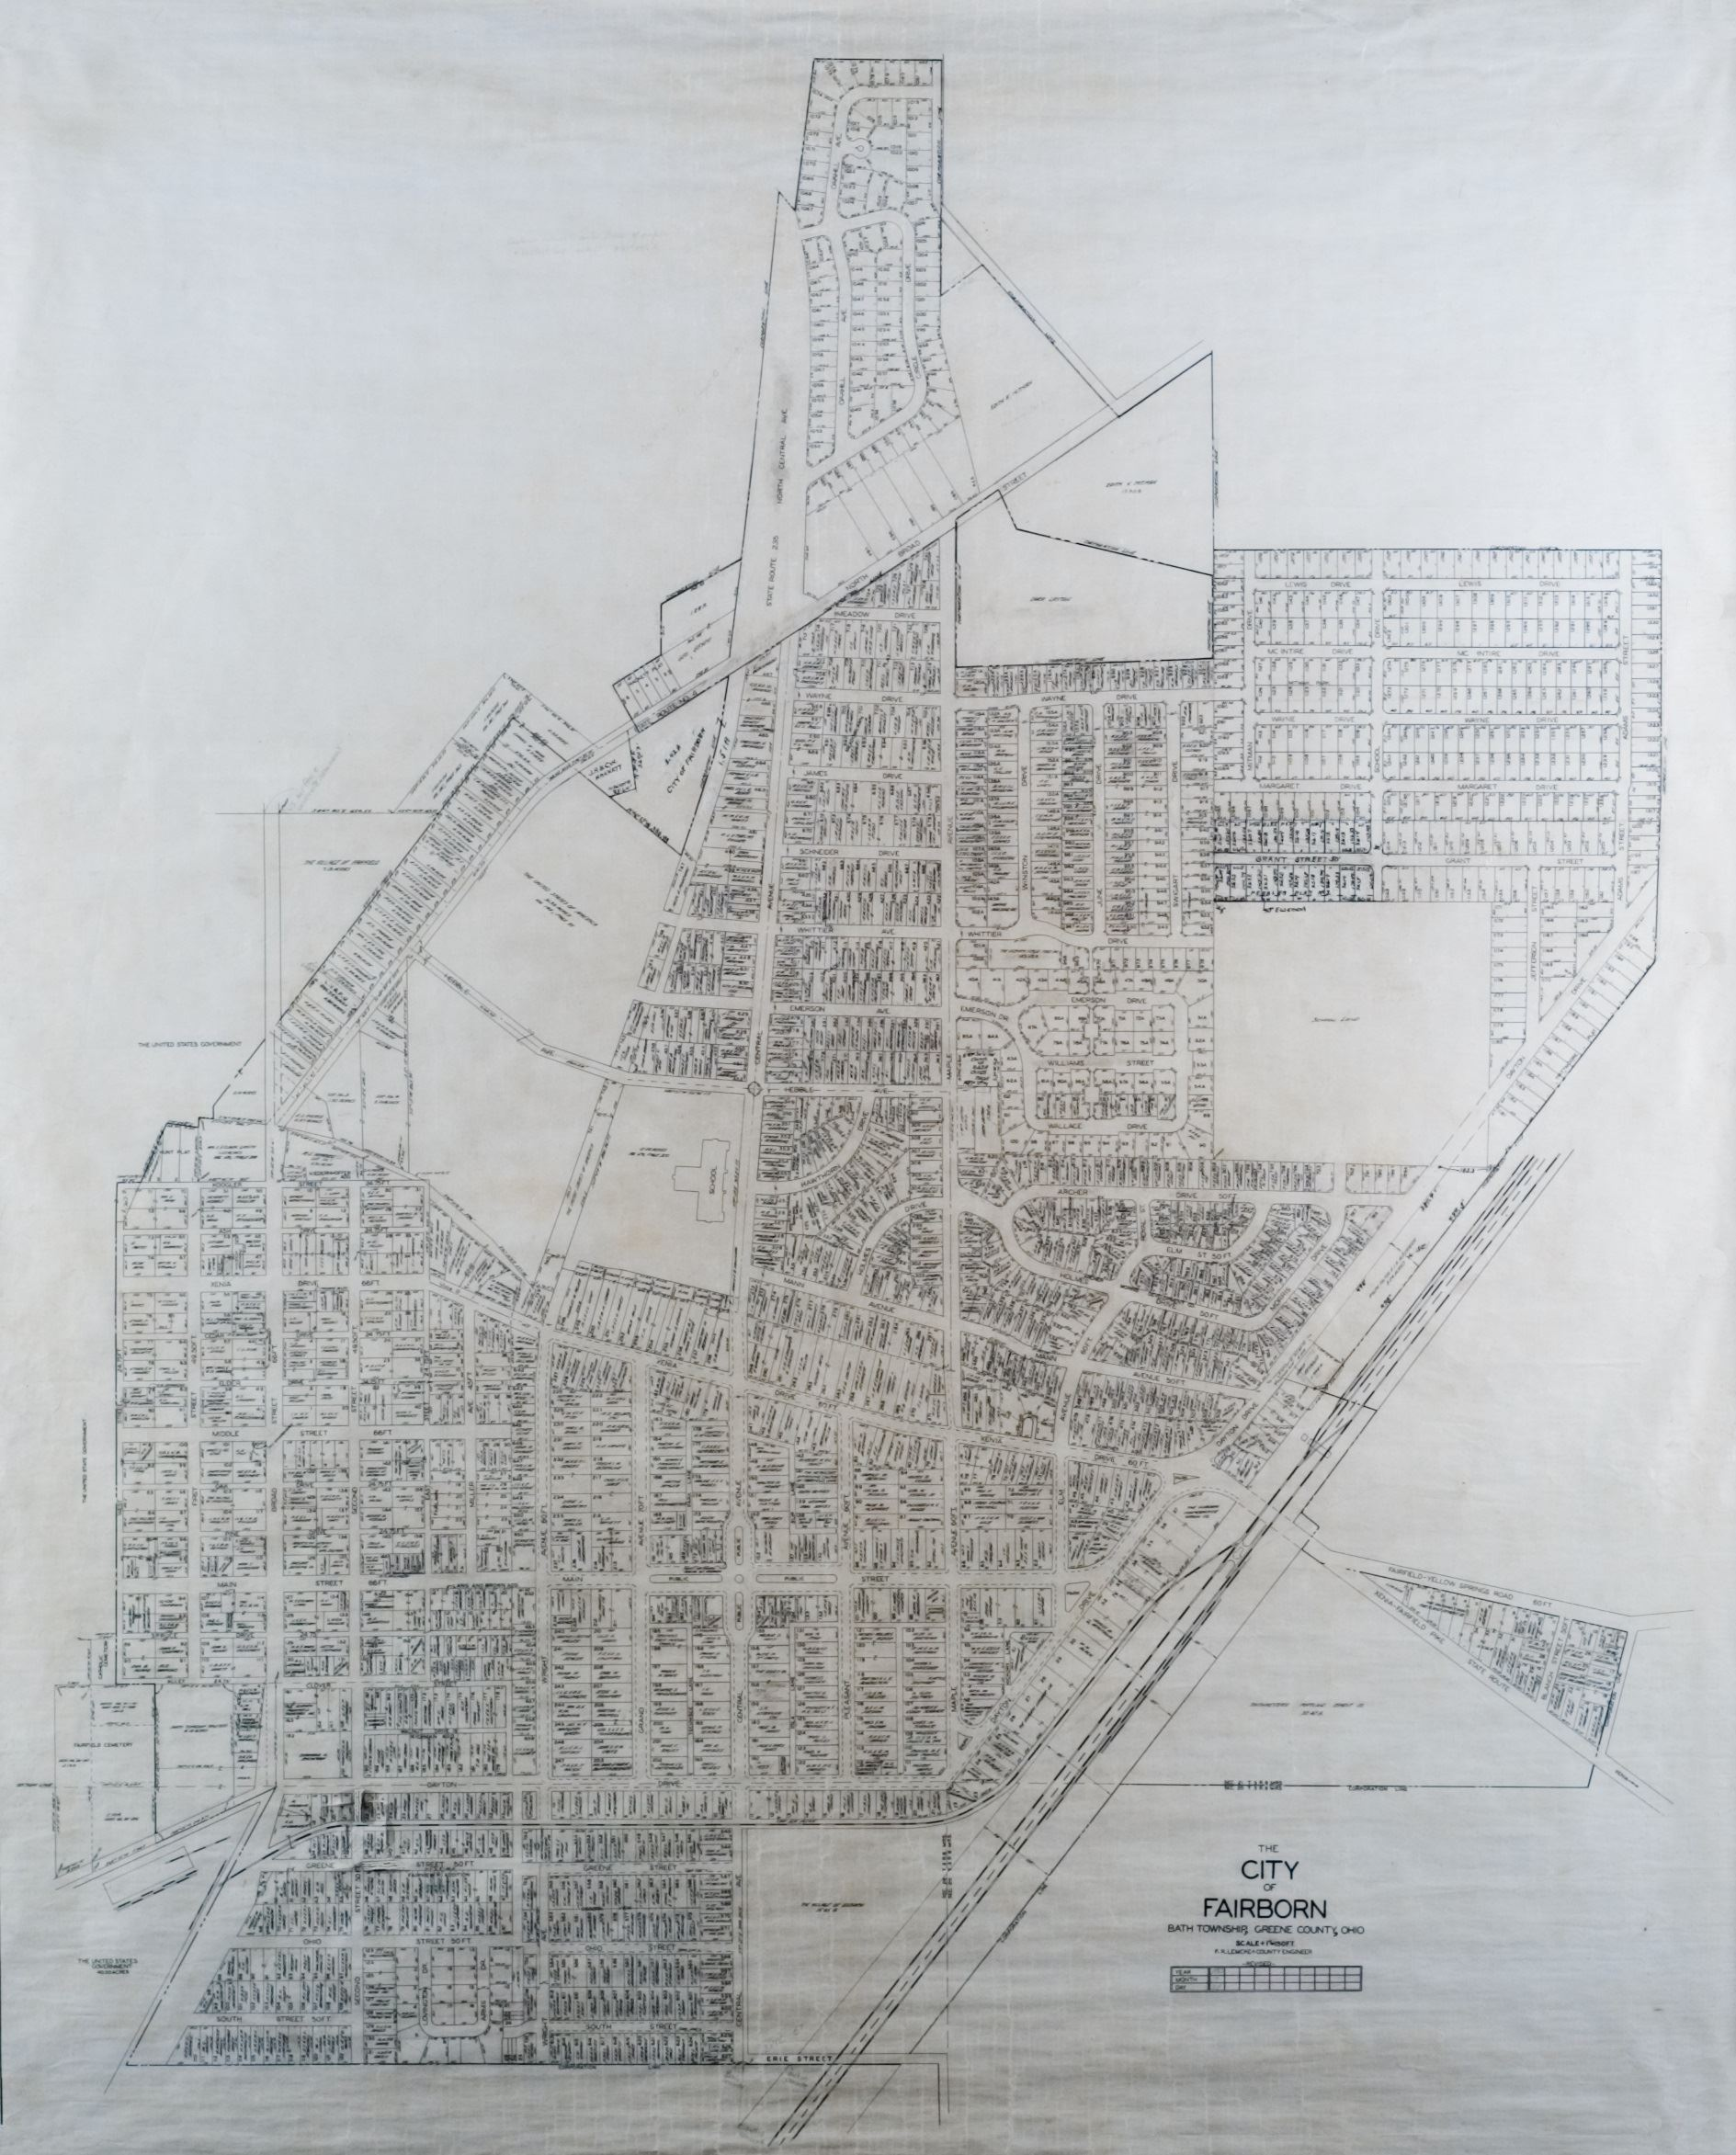 1950 Engineer Map of the City of Fairborn (JPG)